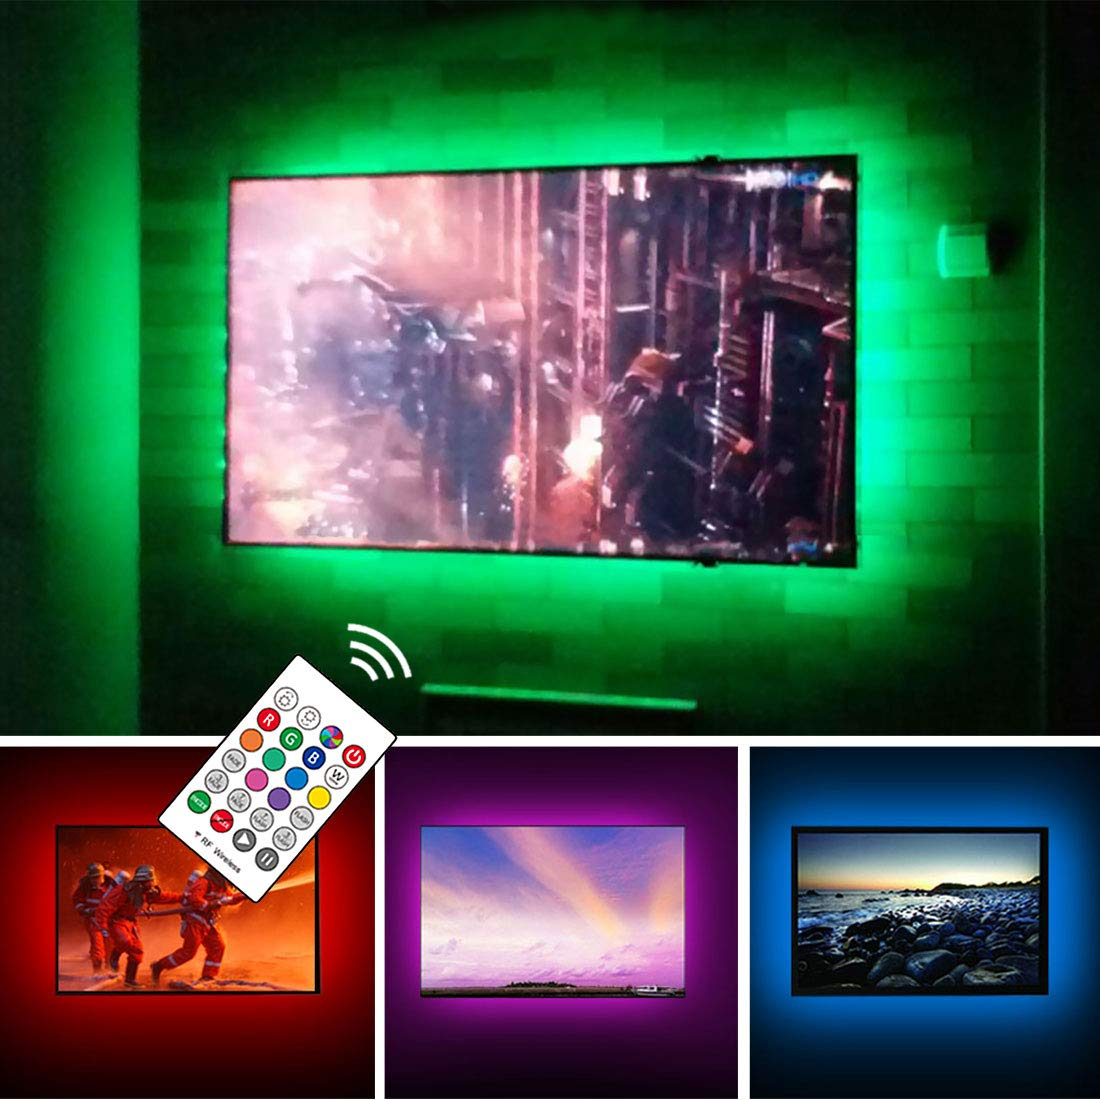 USB TV Backlight Kit for 70 75 80 82 inches Smart TV Monitor HDTV Work Space Decor - Cover 4/4 Sides Surround Behind TV Background Lights Ambient Mood Lighting